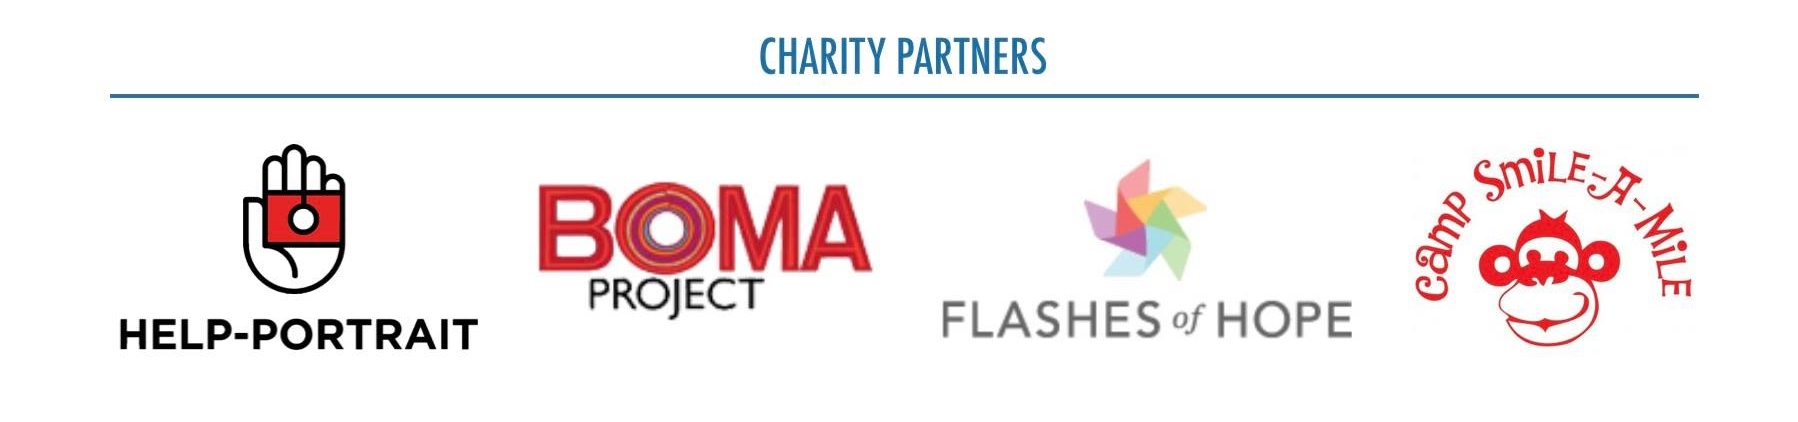 You can choose to which of these 4 charities your 10 percent goes. By default, they all get 2.5 percent. Or, if you think the 5 Day Deal's actually too cheap, you can double the amount that goes to charity, too!